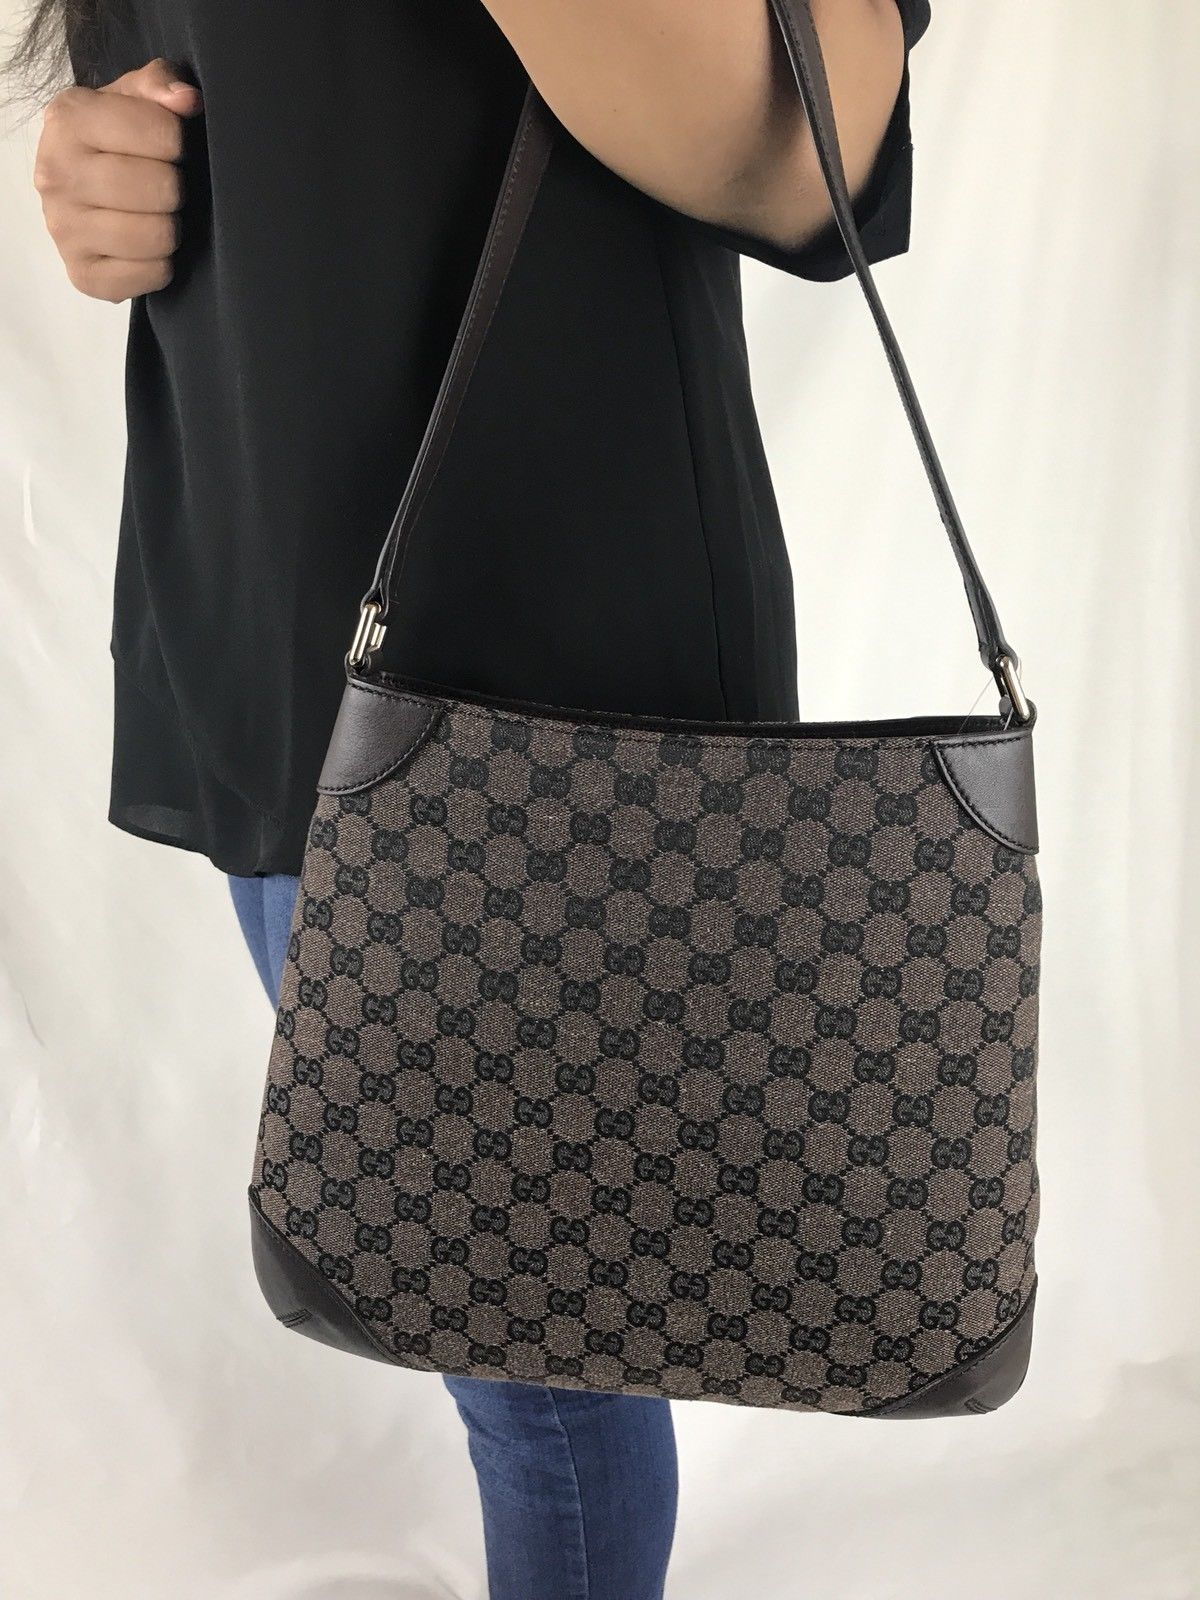 14f440755300 ... GUCCI BROWN CANVAS LEATHER BAG Costco limited edition